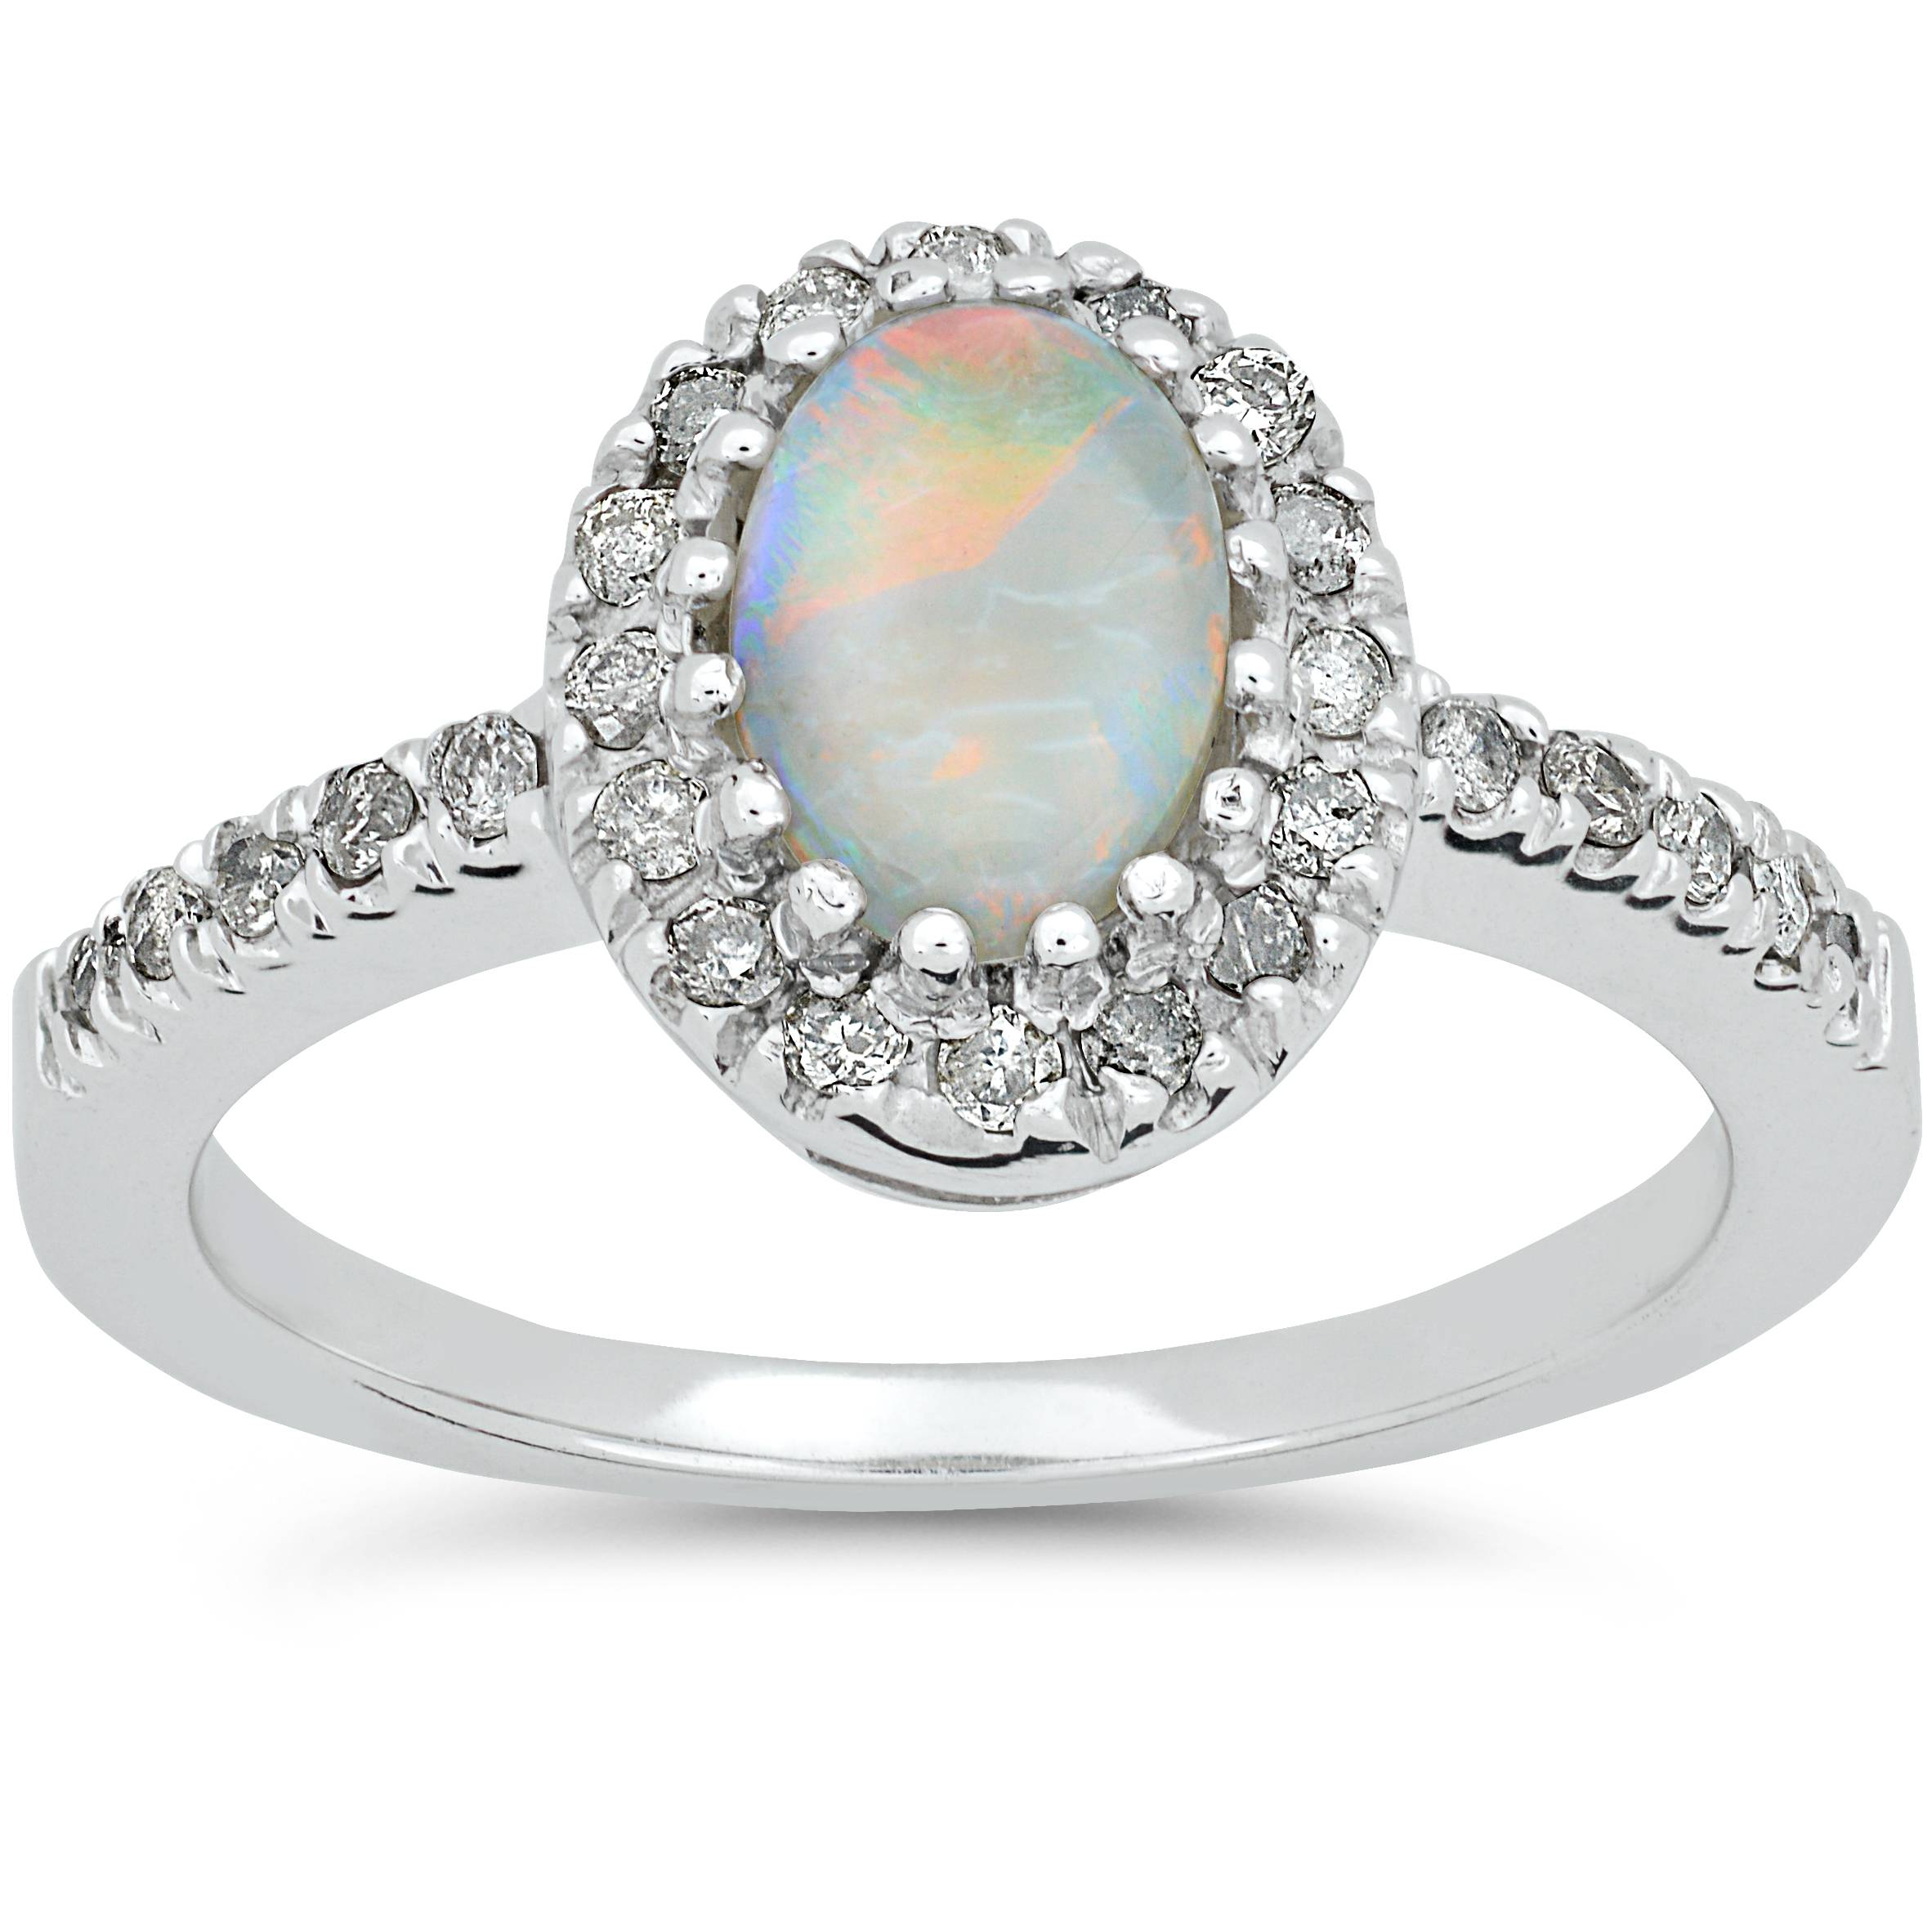 3 4ct oval opal halo engagement solitaire ring